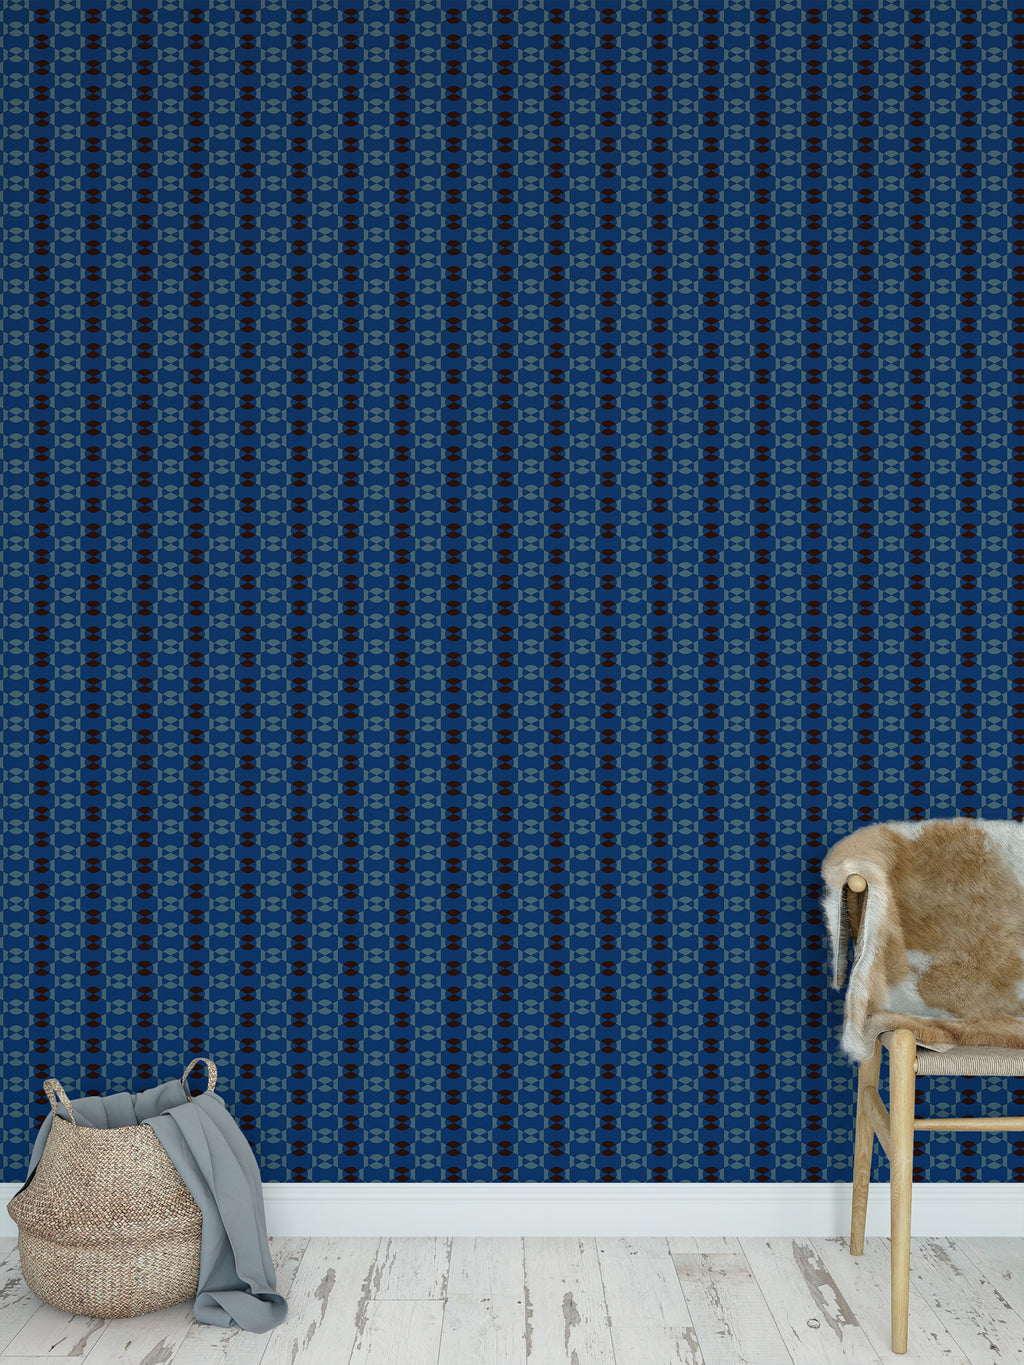 JOYFUL BLUE AND COFFEE SMALLSCALE Peel and Stick Wallpaper By Jackie Reynolds